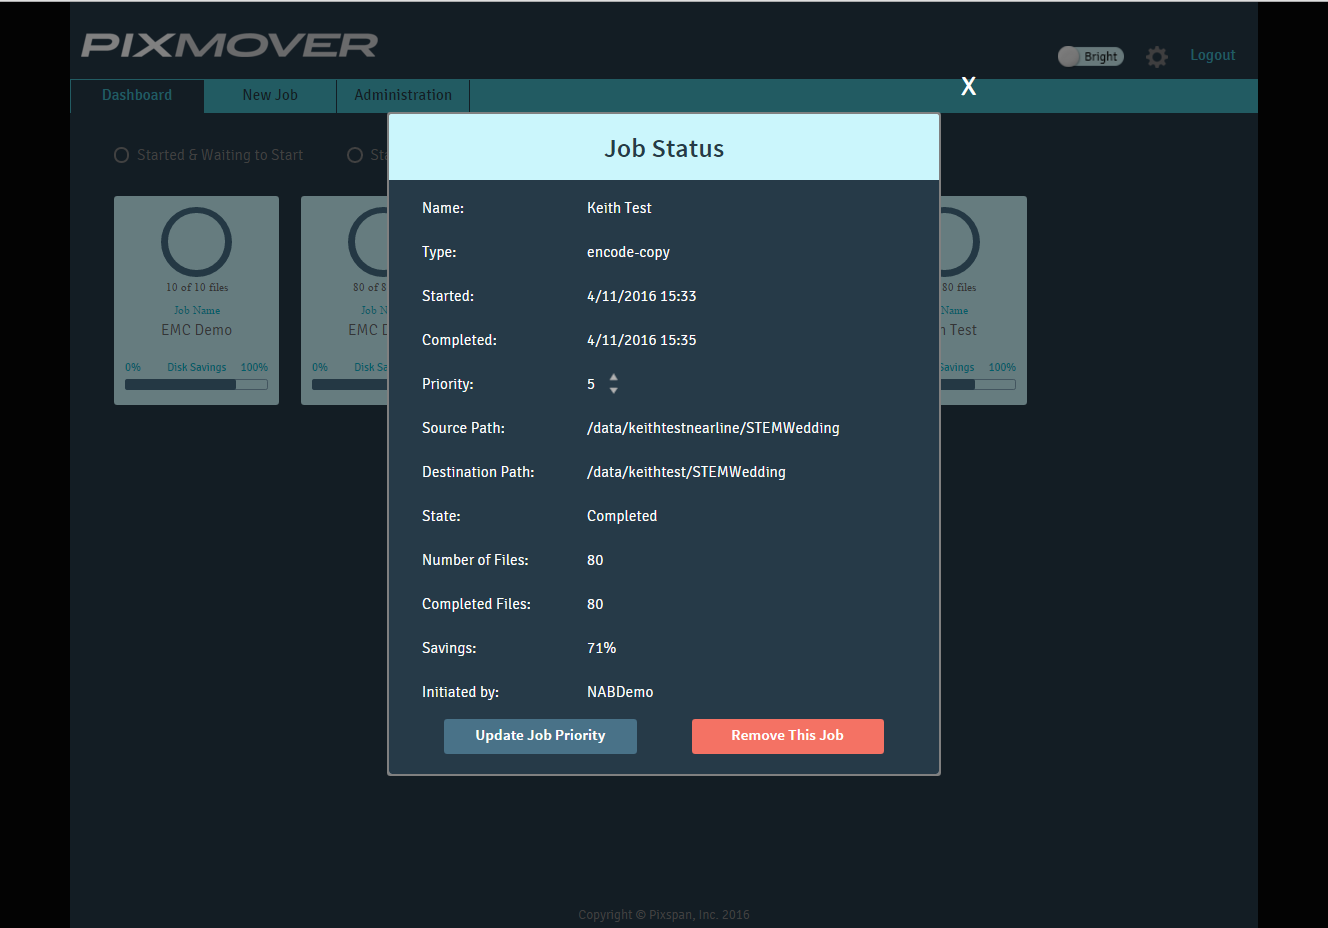 PixMover™ Dashboard